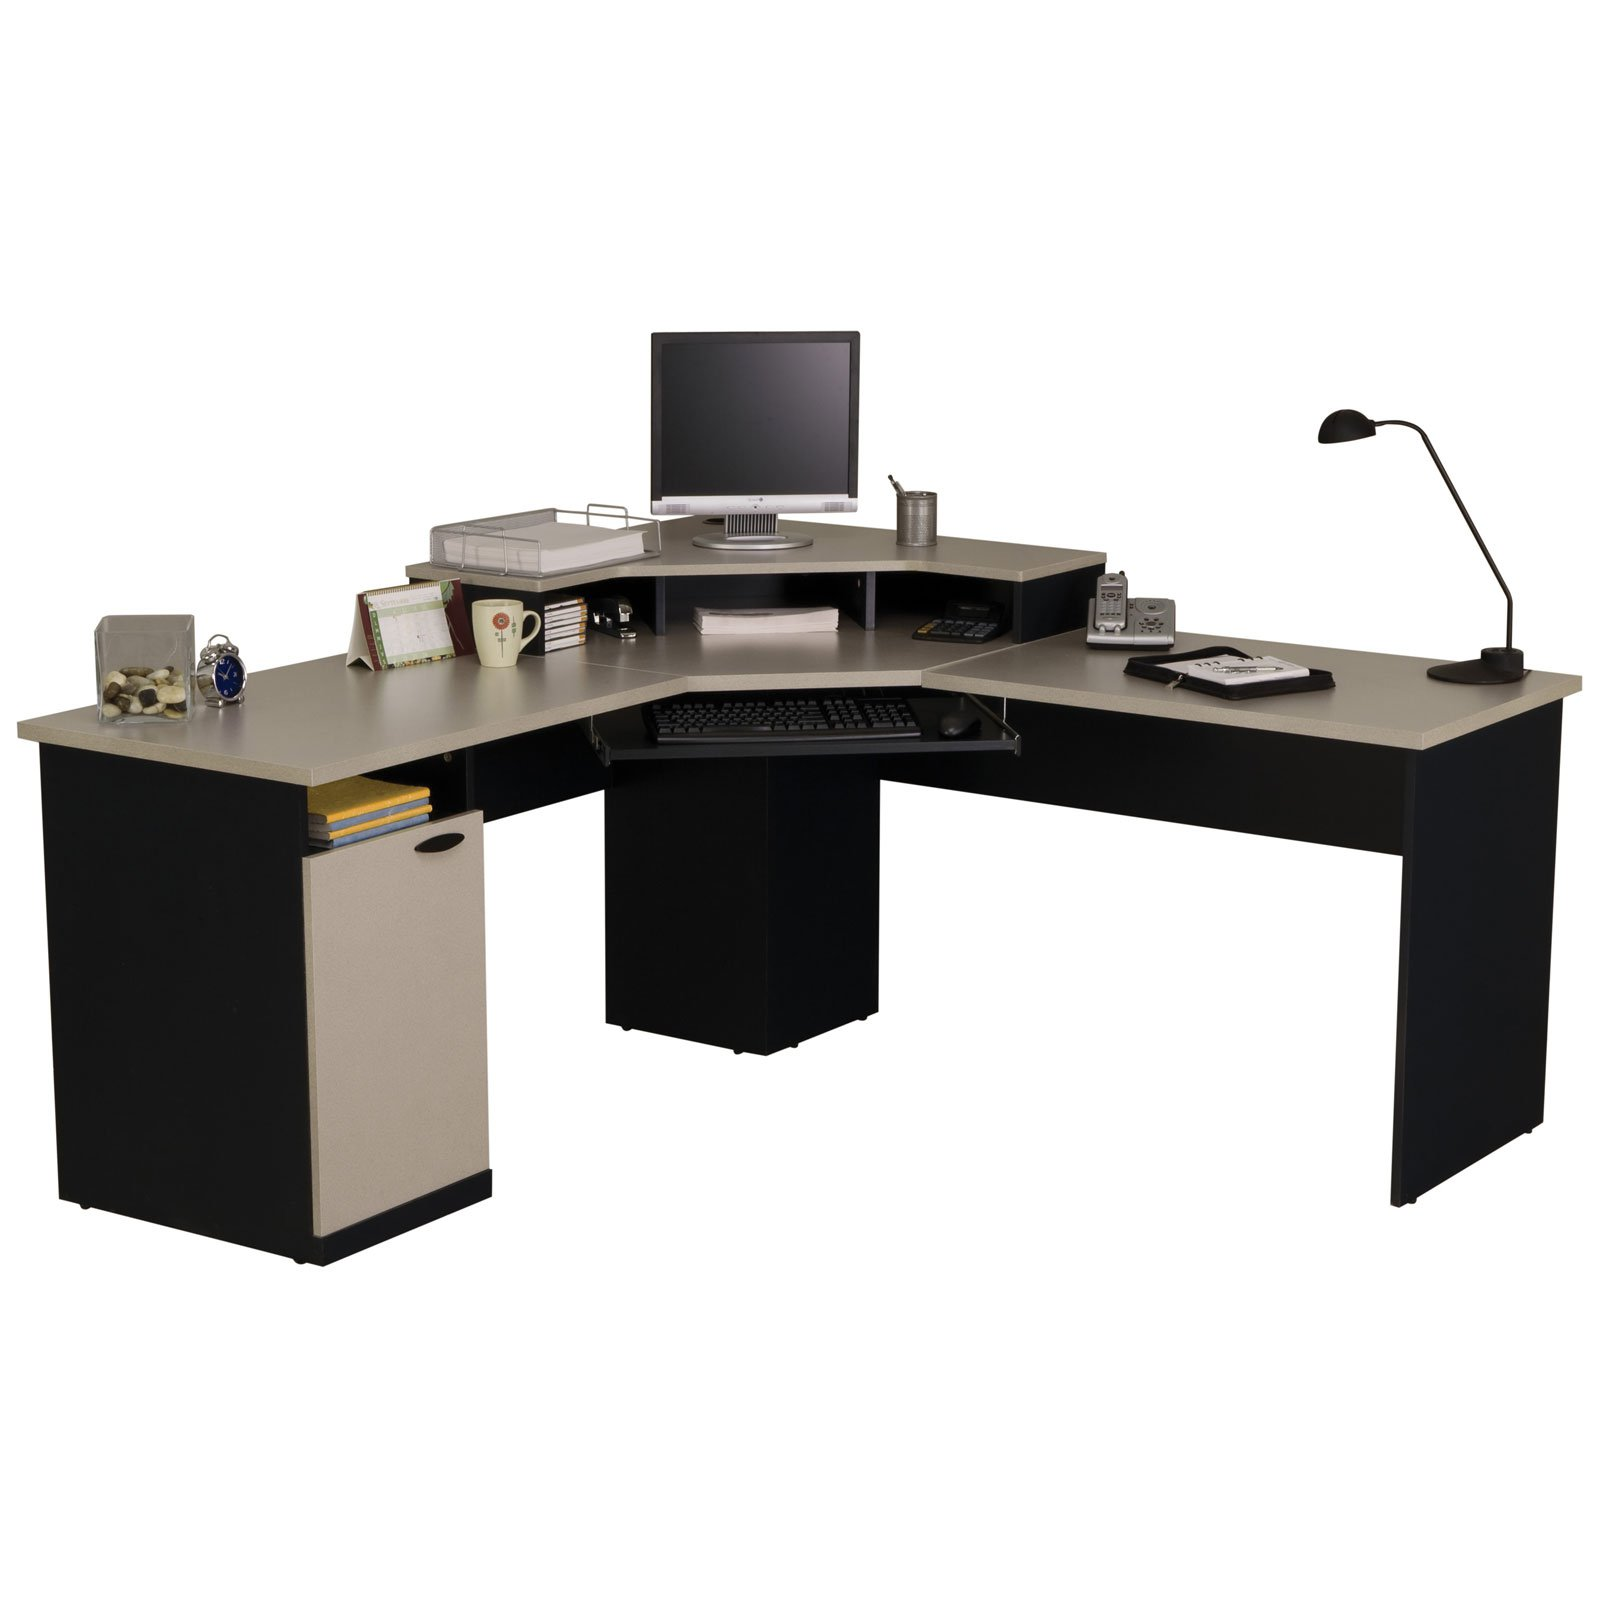 Bestar Hampton Corner Computer Desk   Walmart com. Everything Office Furniture Corner Computer Desk. Home Design Ideas